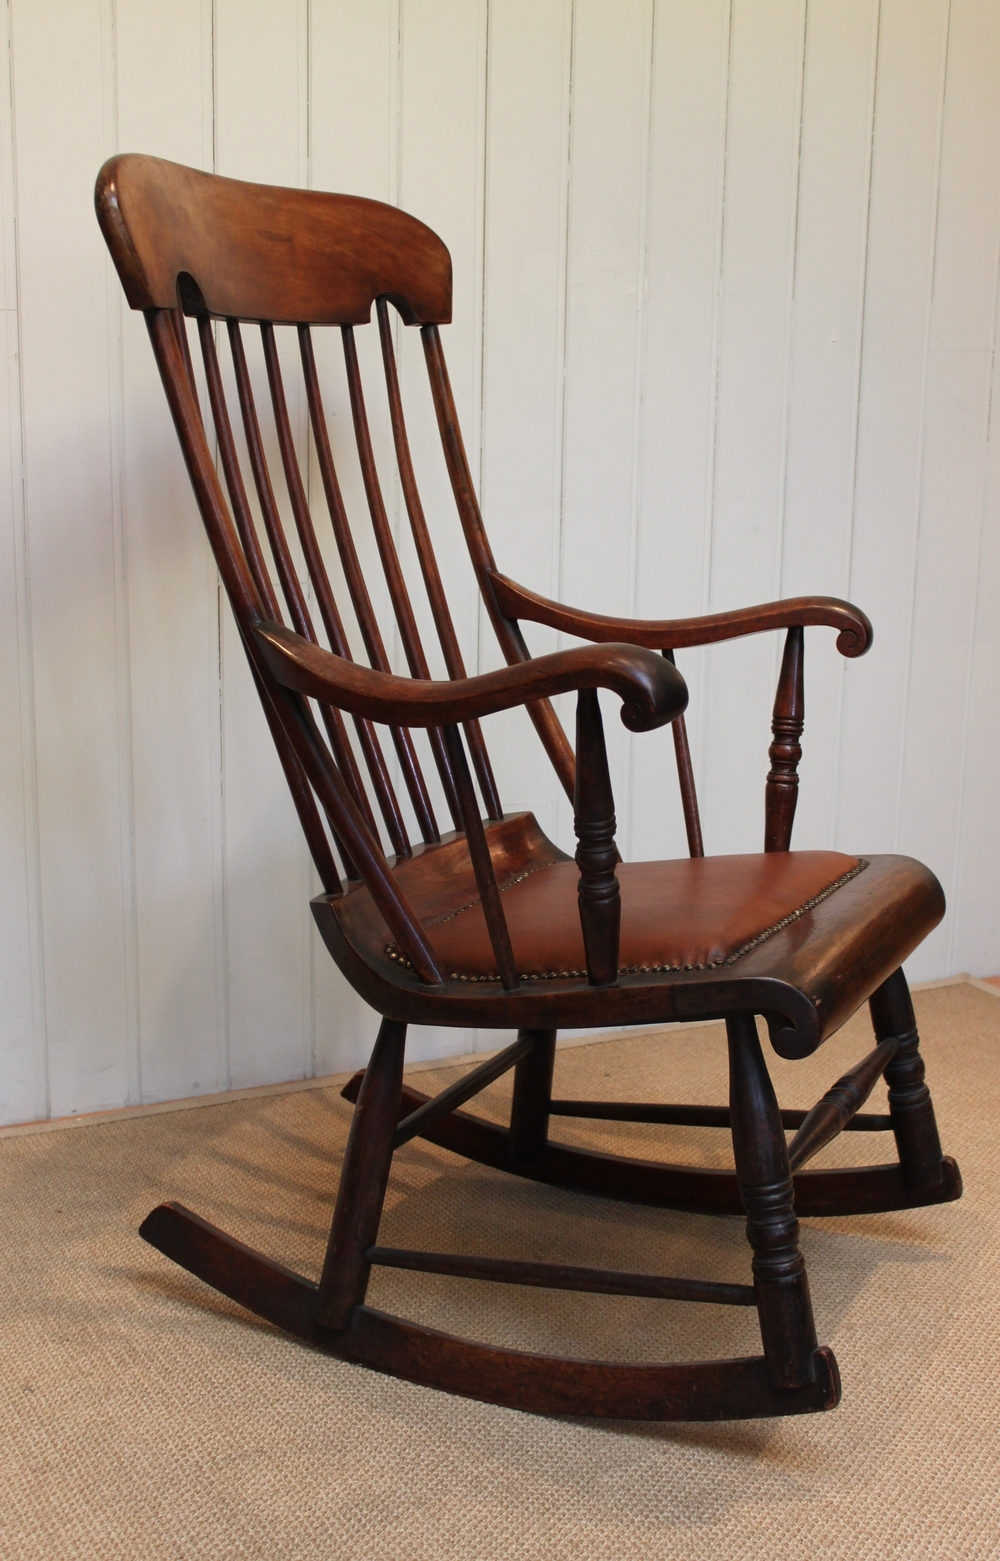 54 Antique Rocking Chair, Online Get Cheap Antique Rocking Chairs Intended For Victorian Rocking Chairs (View 7 of 15)